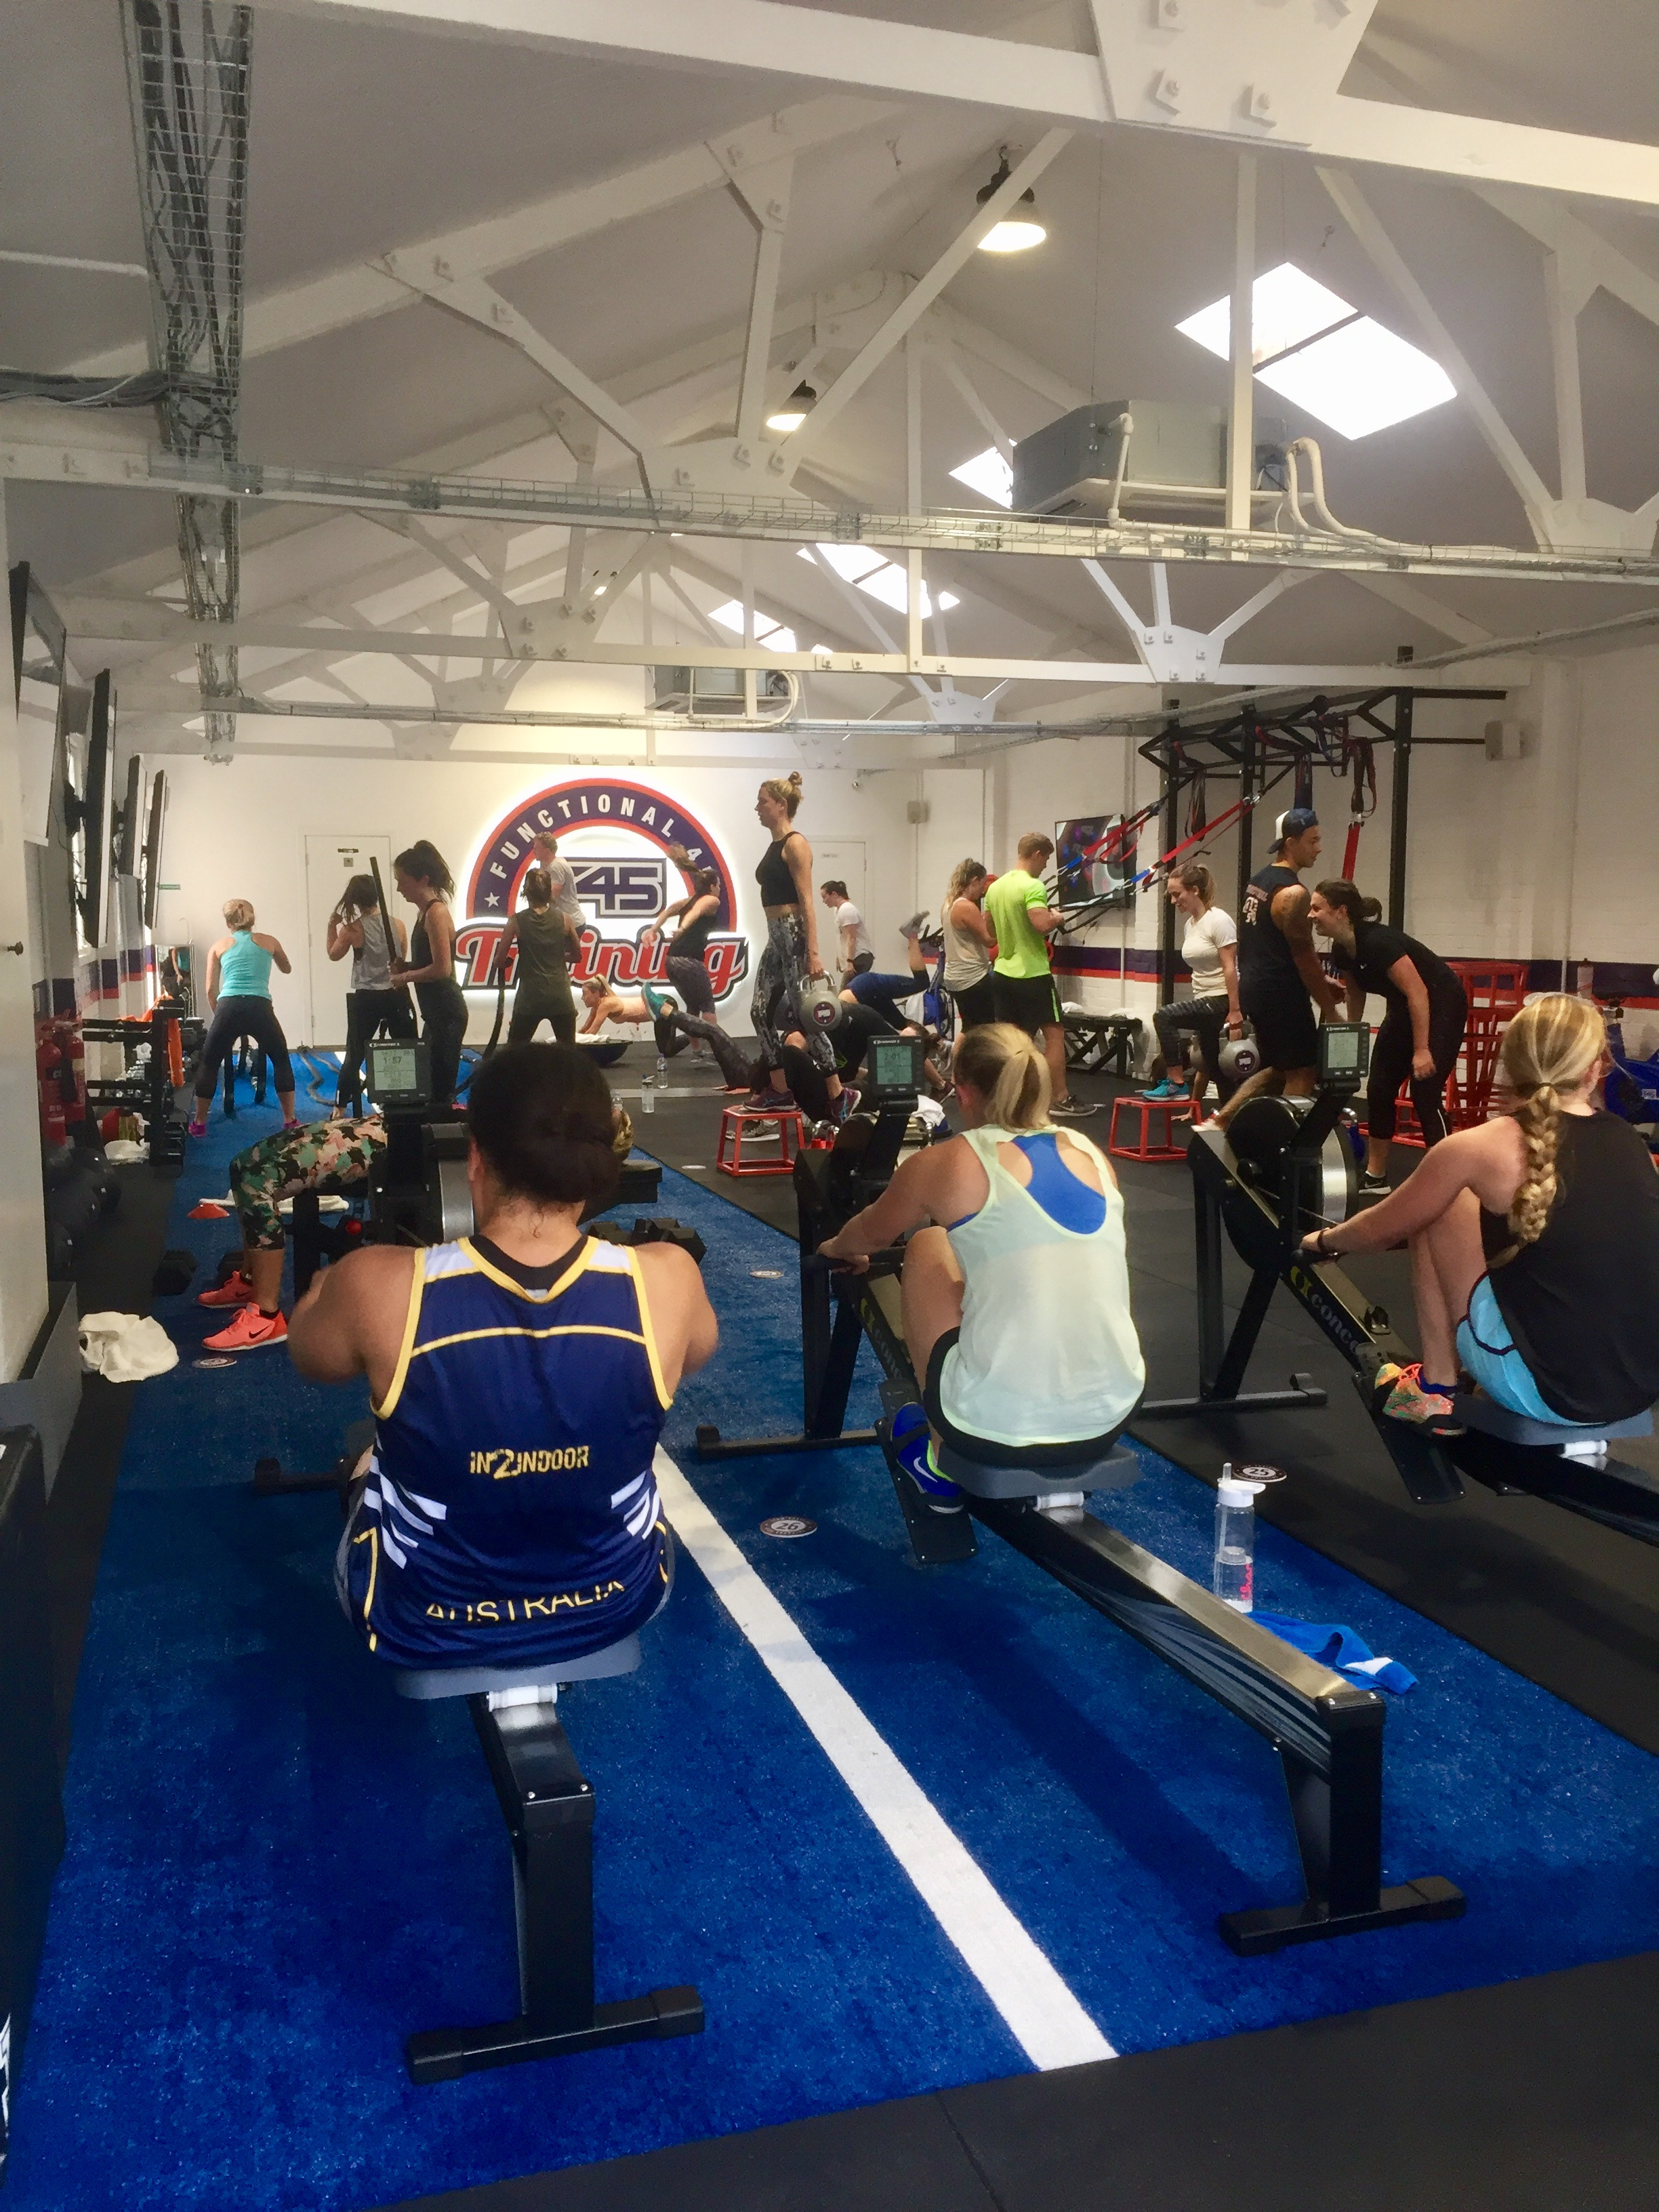 I MOVE ME Hollywood Class F45 Wandsworth London Gym Studio.jpg